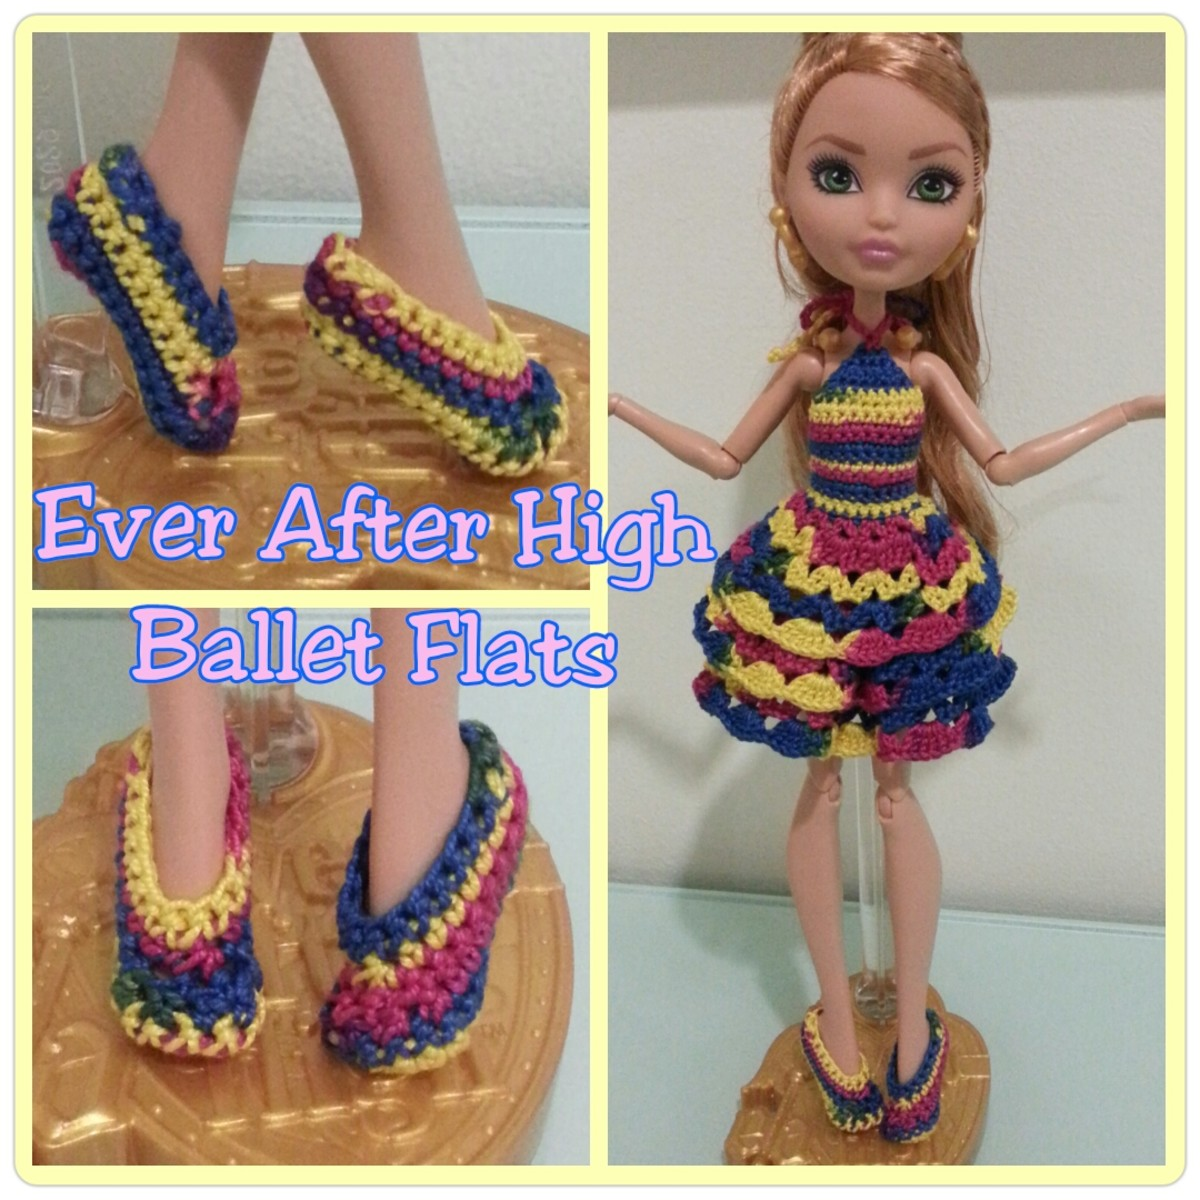 Ever After High Ballet Flats (Free Crochet Pattern)